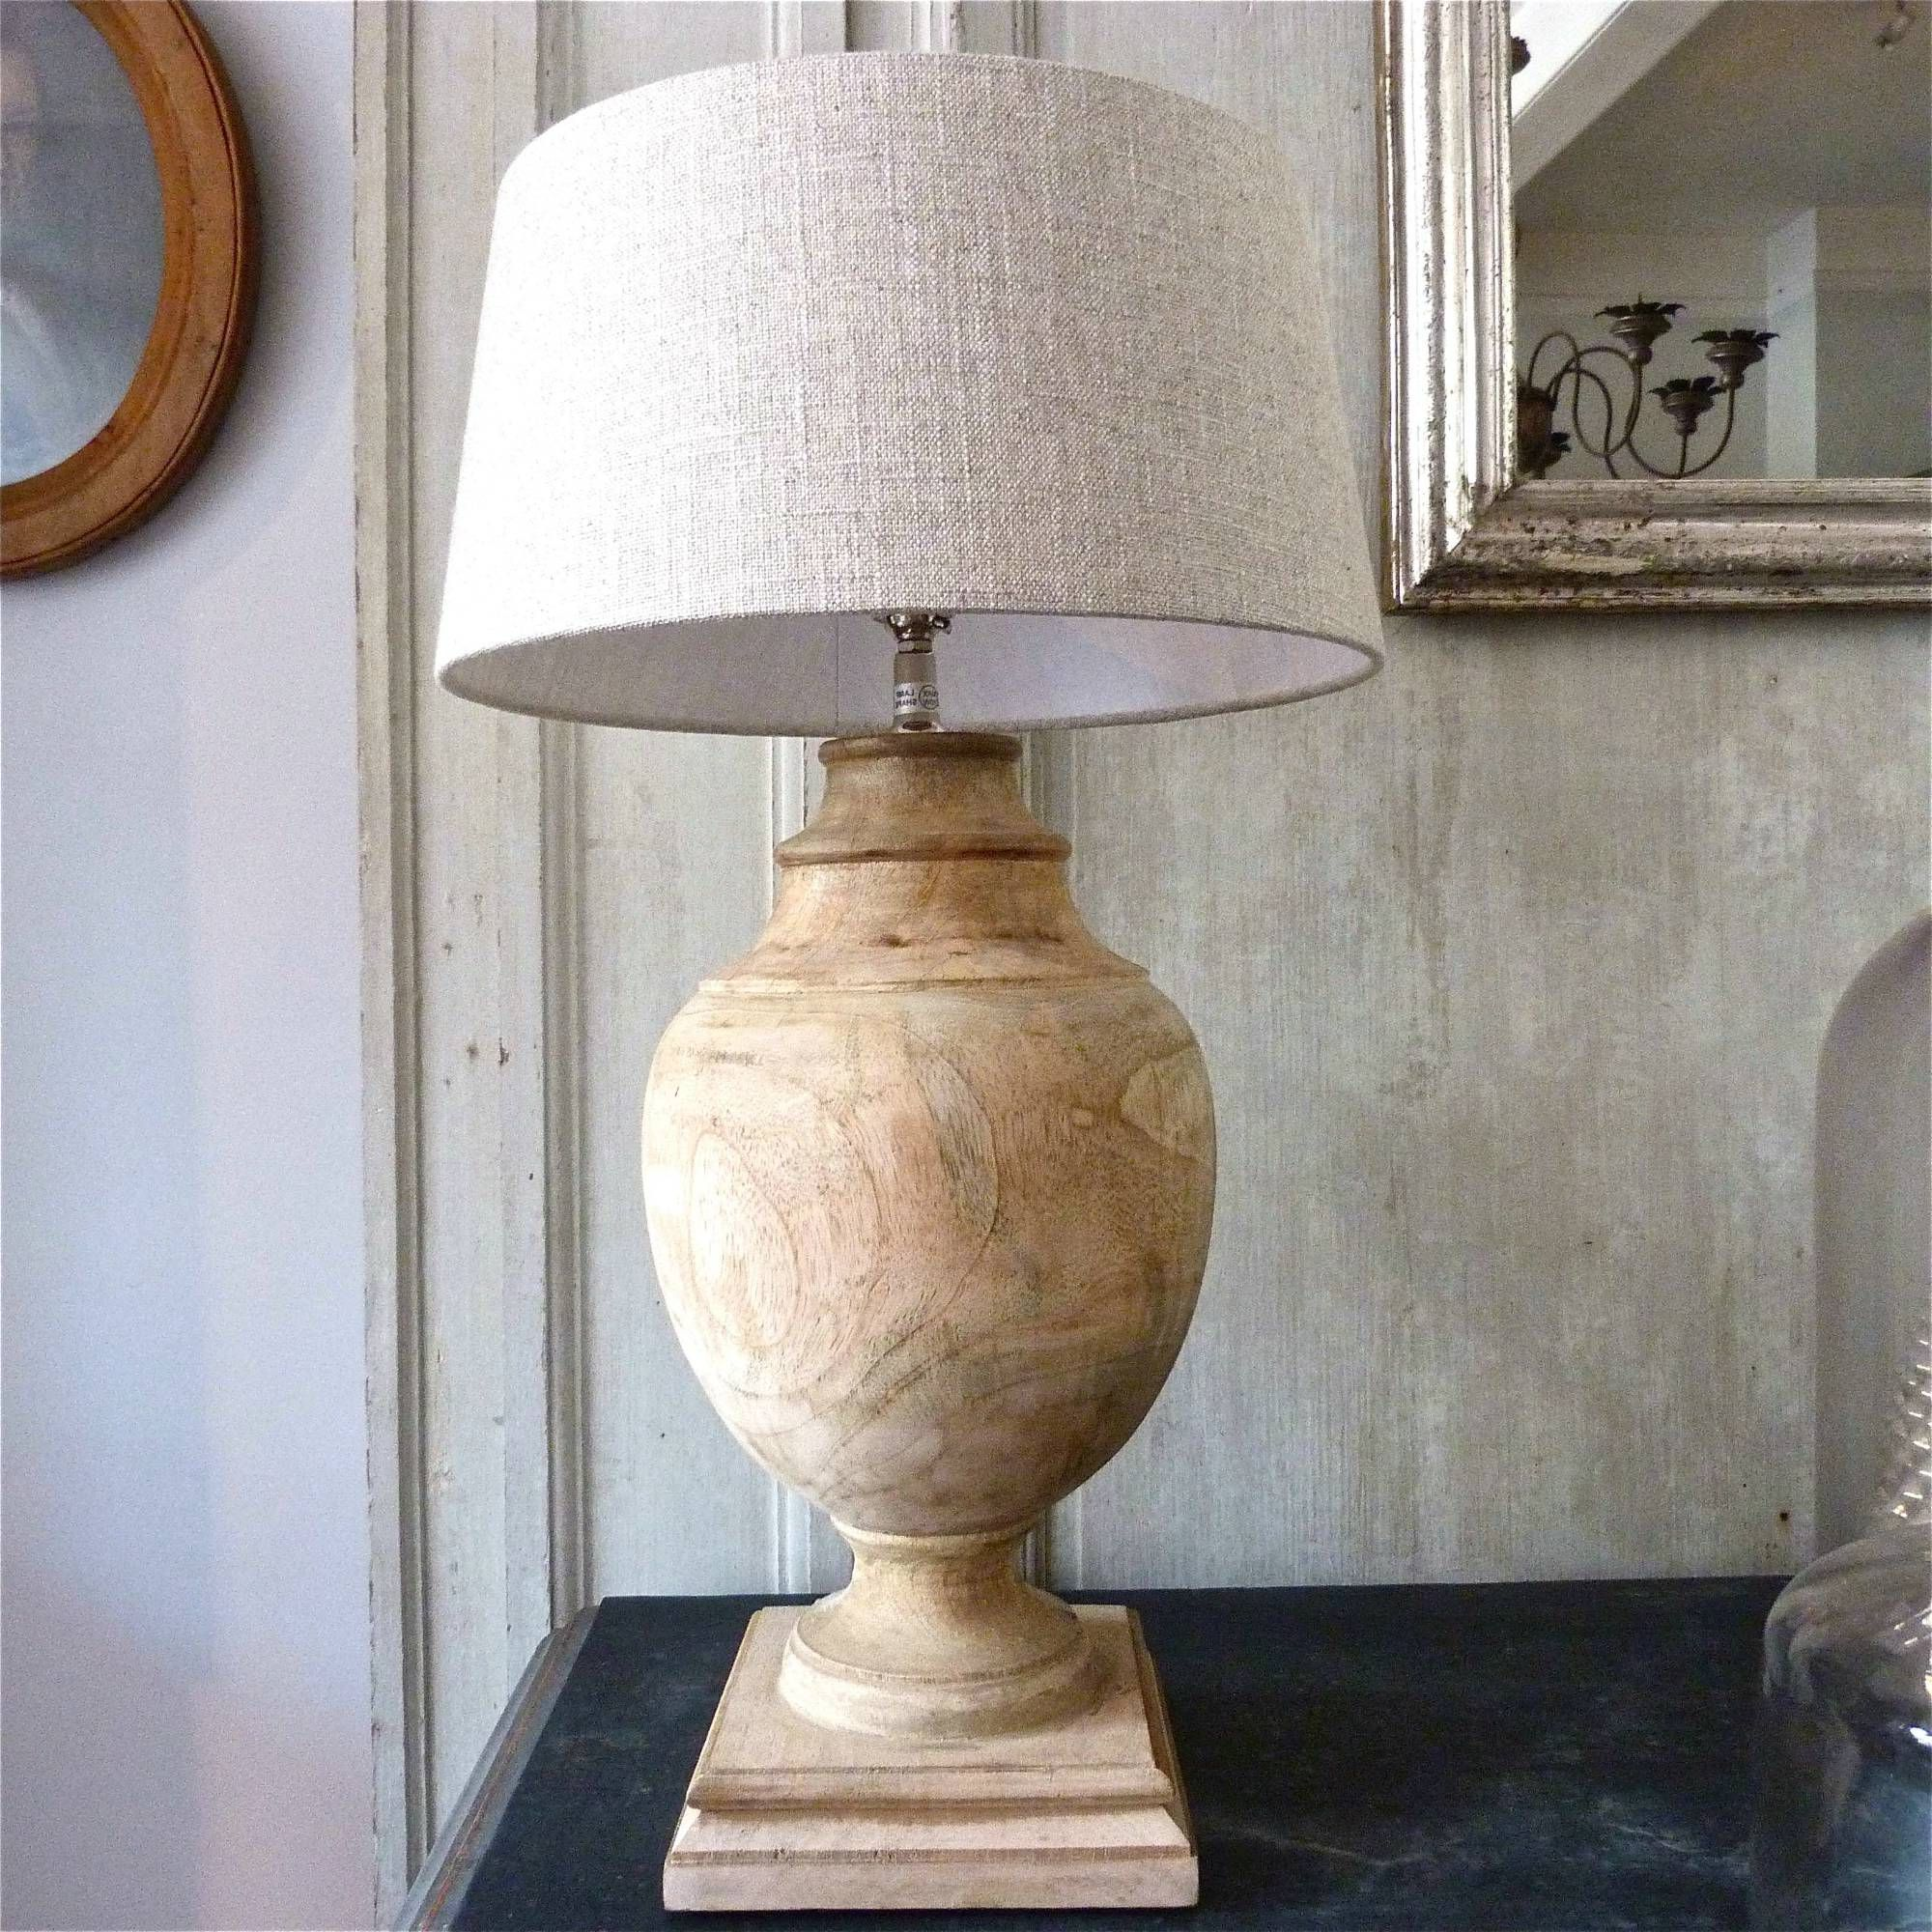 Wooden Table Lamps For Living Room Carved Wooden Table Lamps Google Search Dettagli Pinterest Lamps Living Room Wooden Table Lamps Table Lamp #wooden #table #lamps #for #living #room